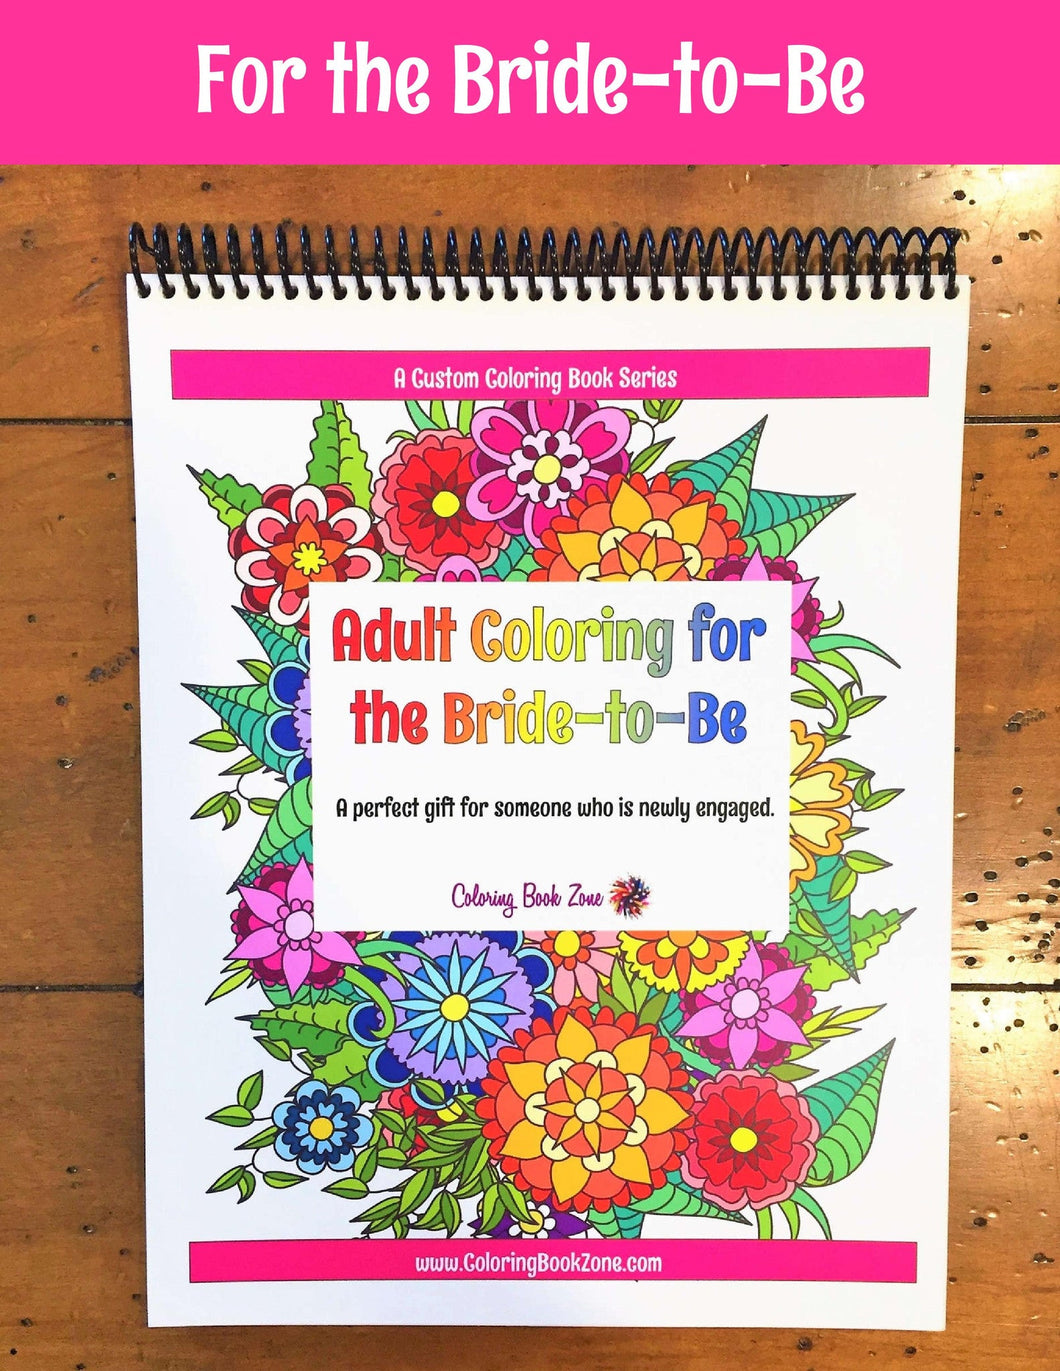 Adult Coloring for the Bride-to-Be - Live Your Life in Color Series ...